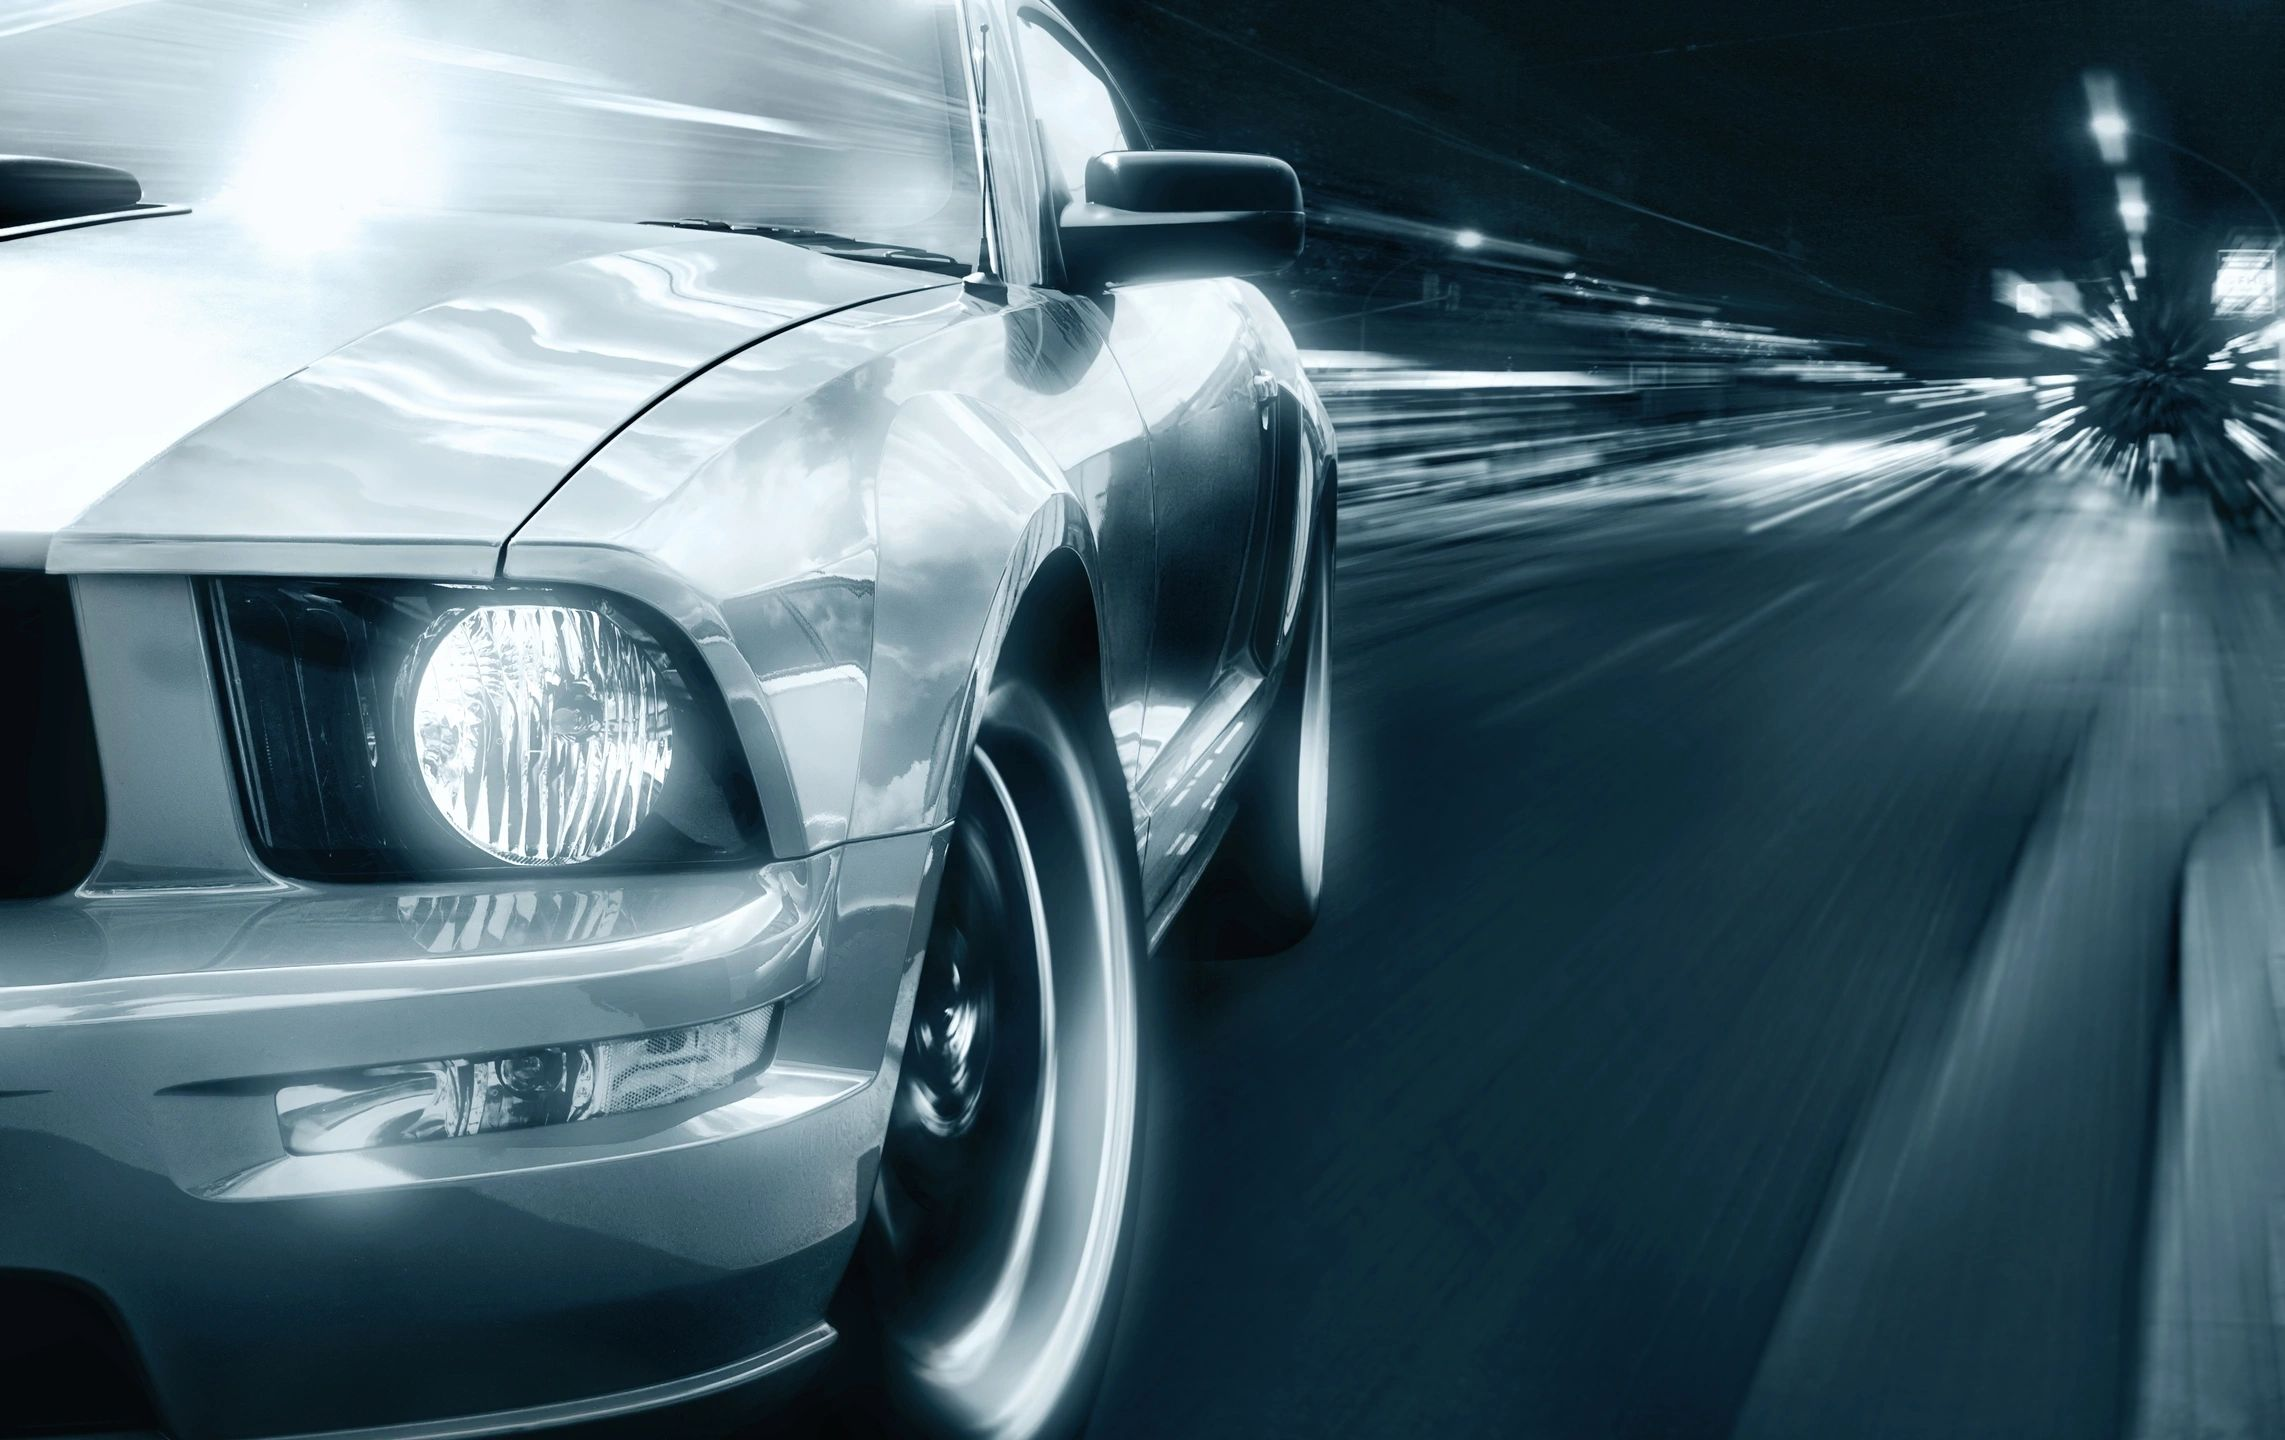 Speeding Ticket Lawyer >> New Jersey Speeding Ticket Lawyer 5 Star Client Reviews The